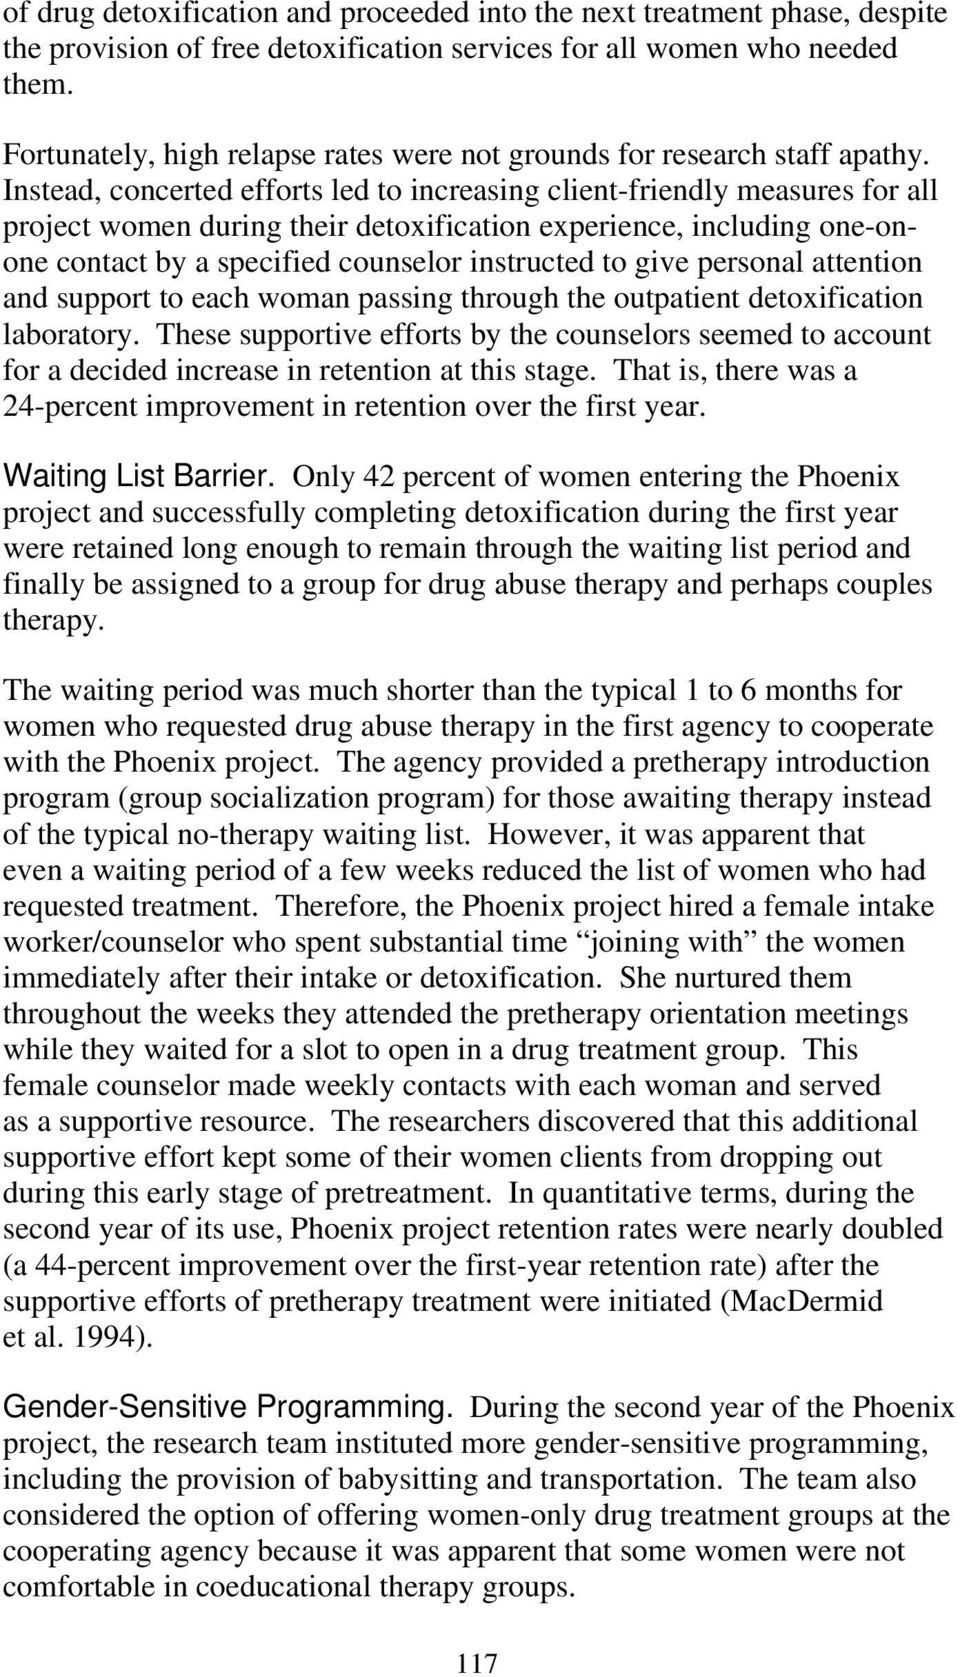 Instead, concerted efforts led to increasing client-friendly measures for all project women during their detoxification experience, including one-onone contact by a specified counselor instructed to